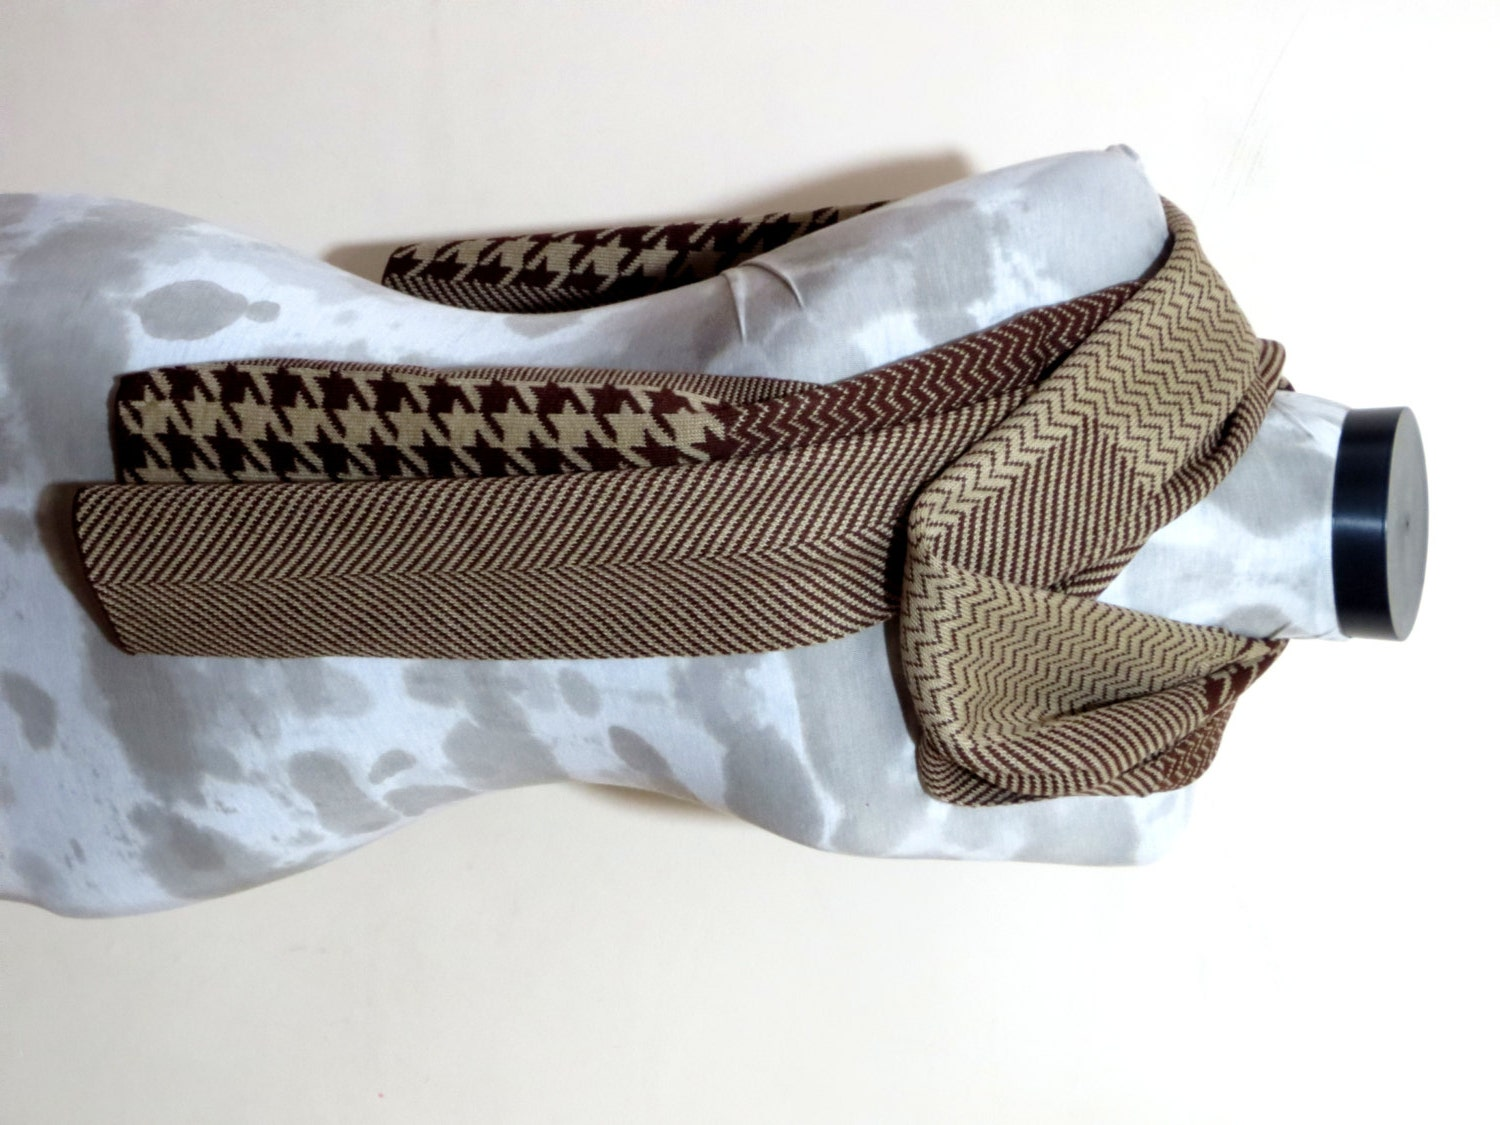 Knitting Machine Scarf Pattern : Knitting machine scarf..Brown and creamchevron by MenAccessory